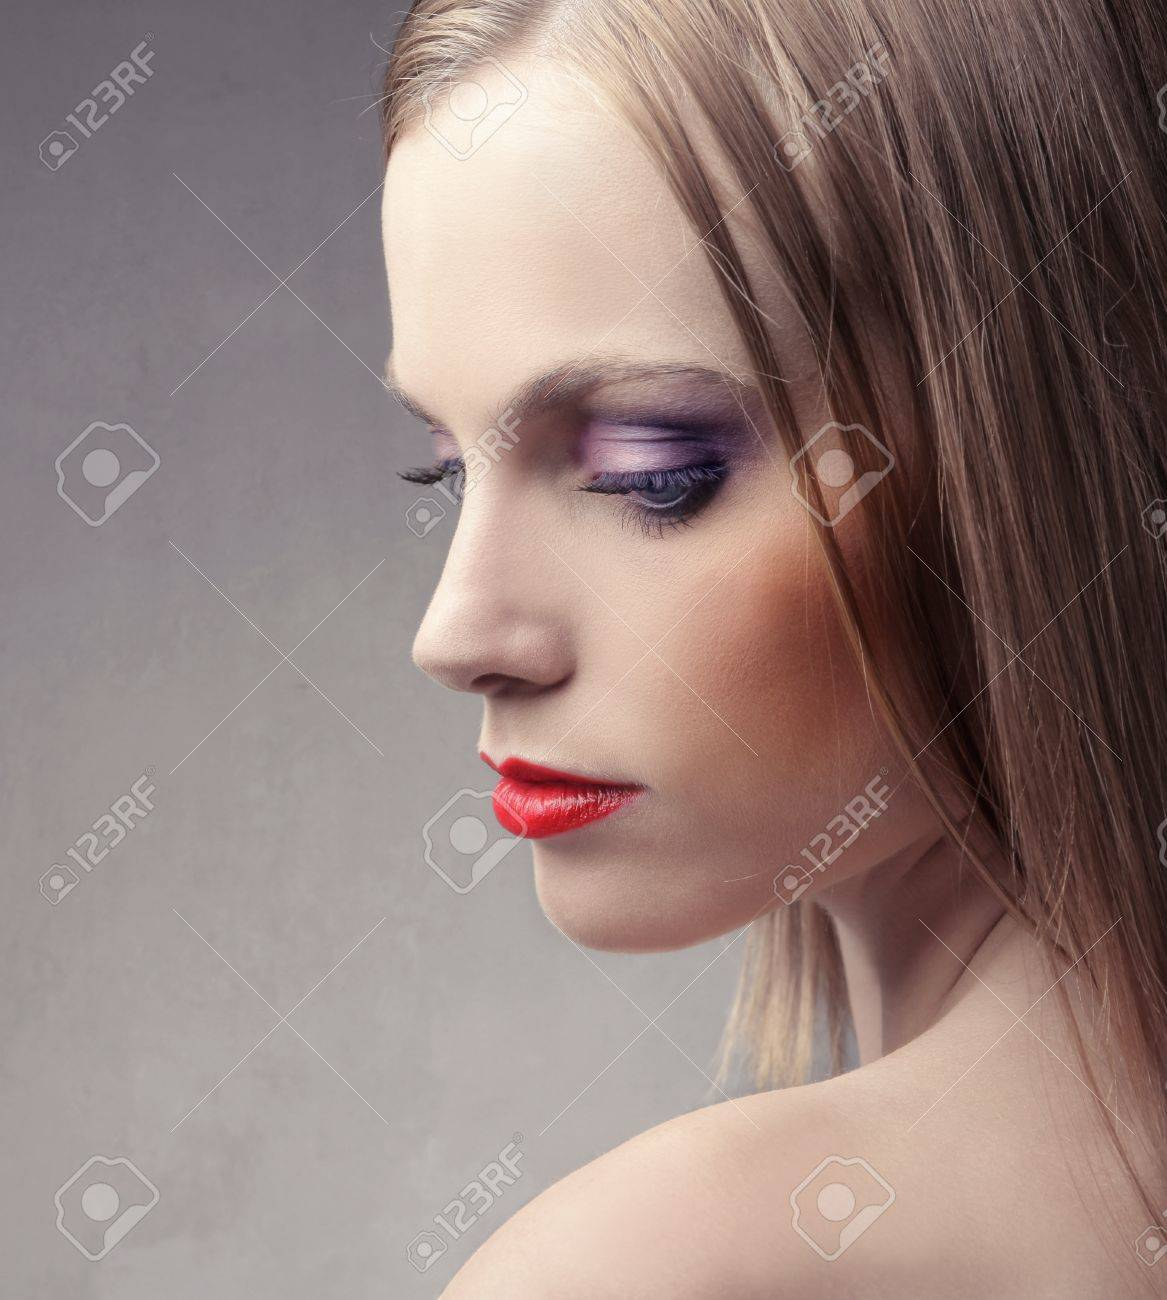 Profile of a beautiful woman Stock Photo - 8612697